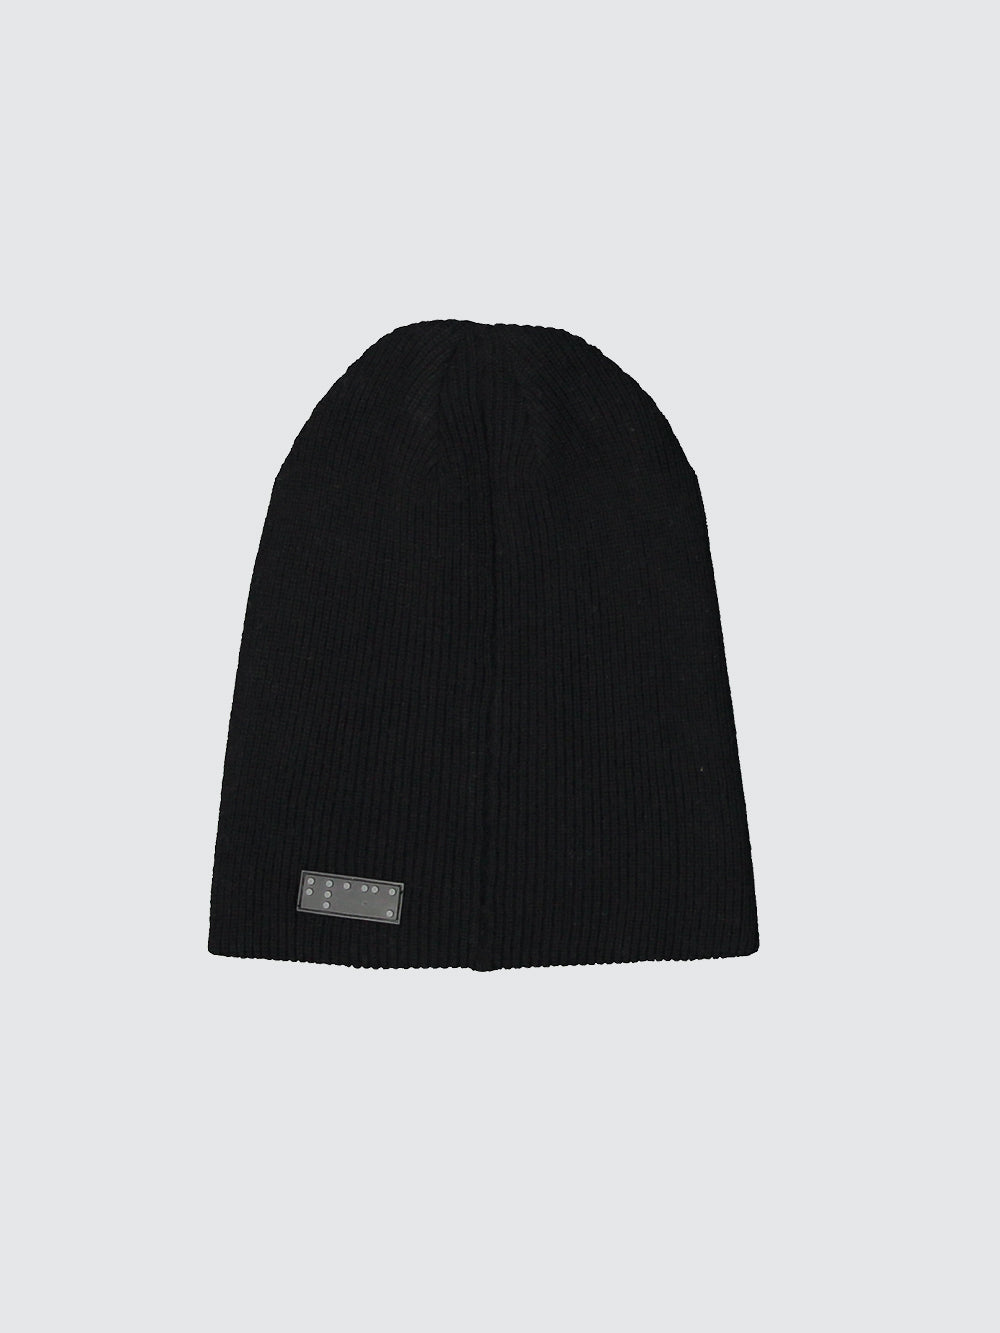 Two Blind Brothers - Gift Beanie Beanie